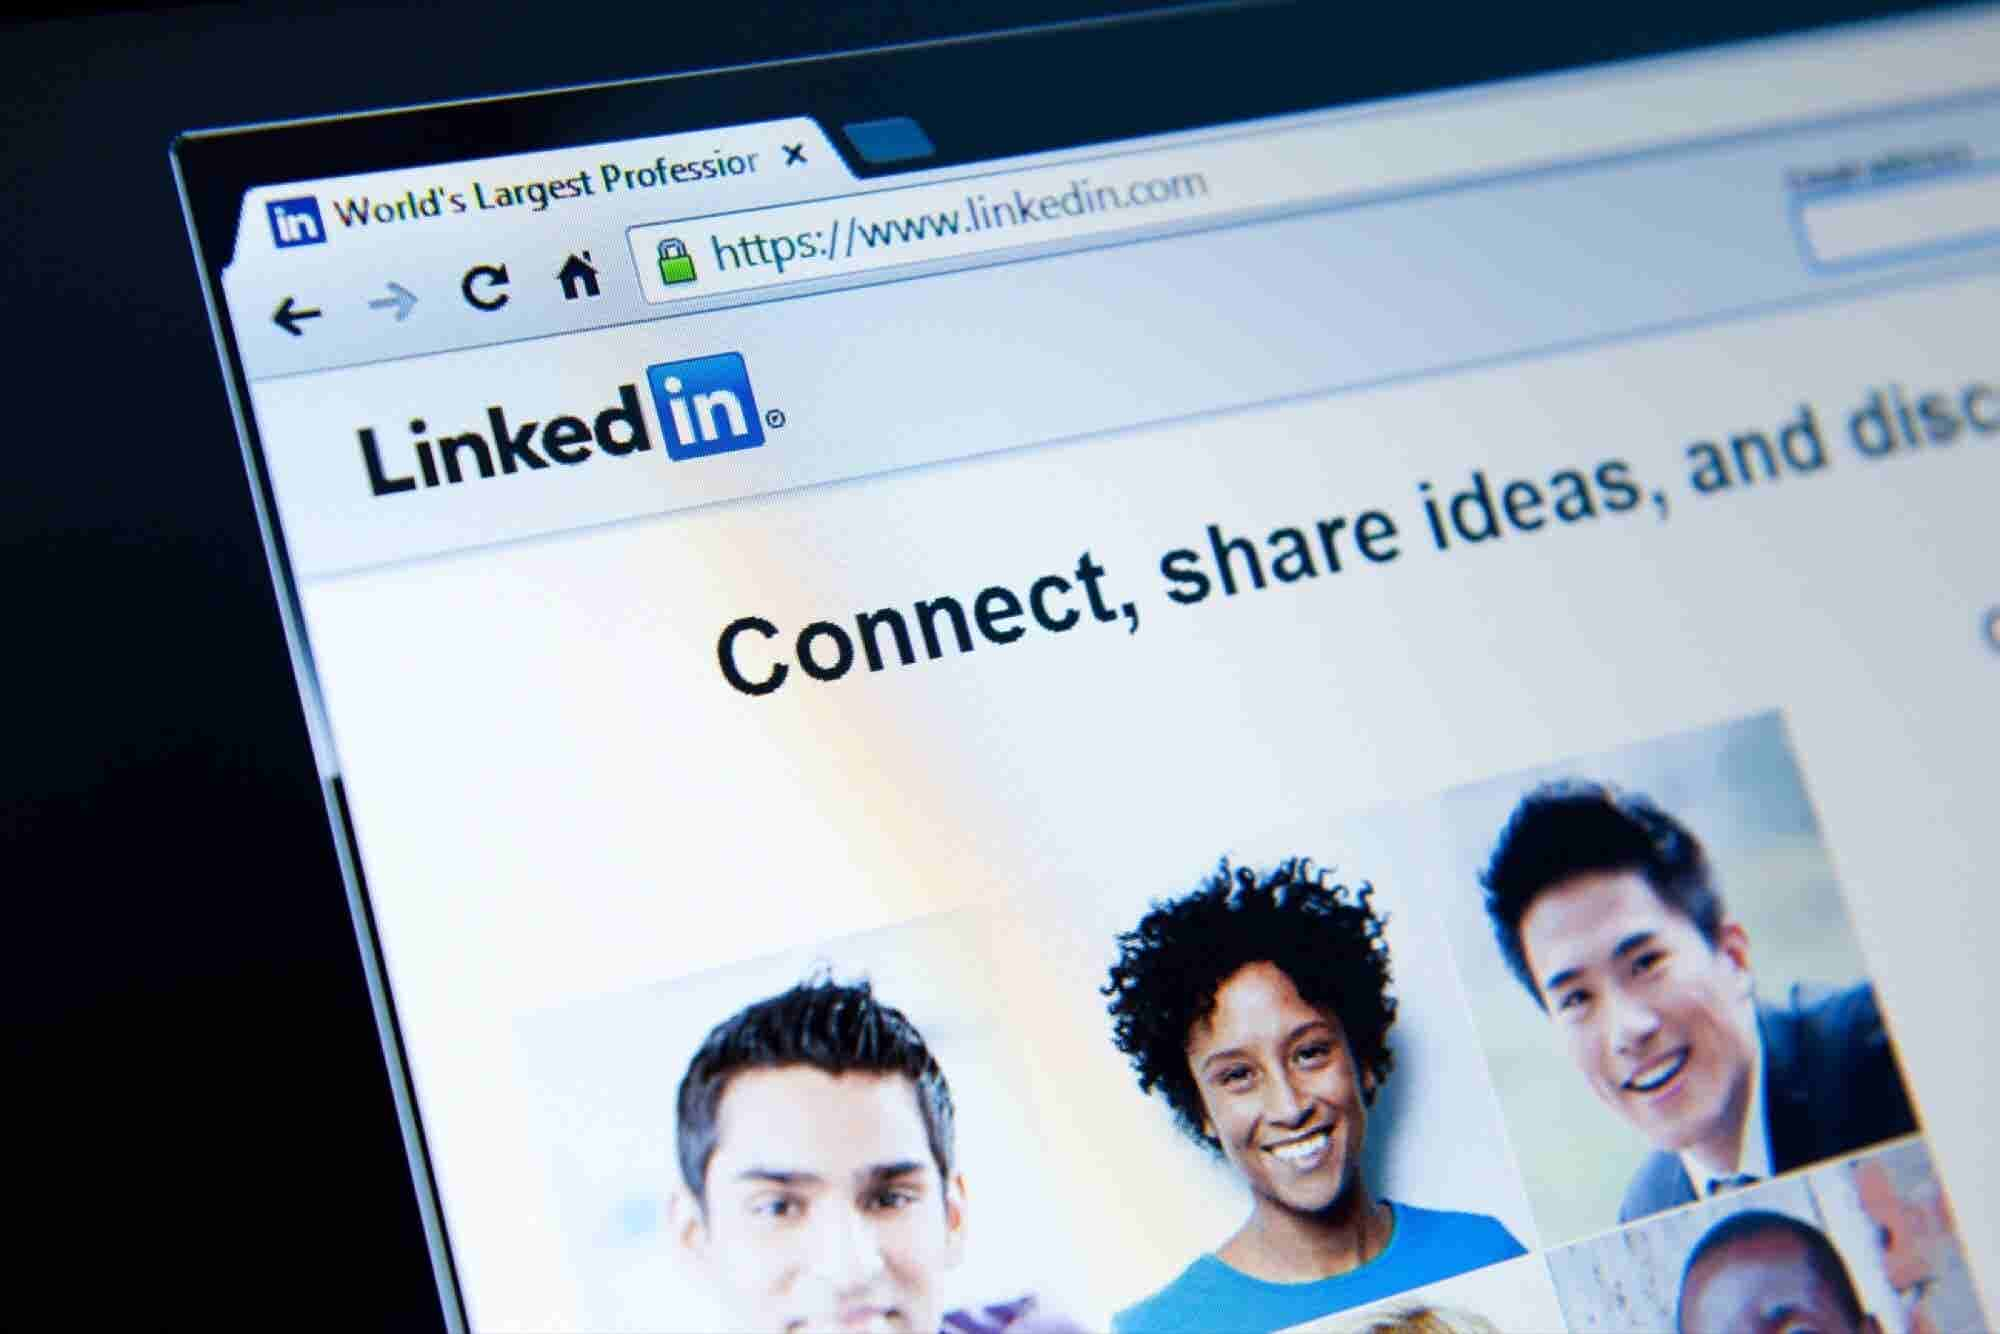 Tips For Small Business Owners to Leverage LinkedIn